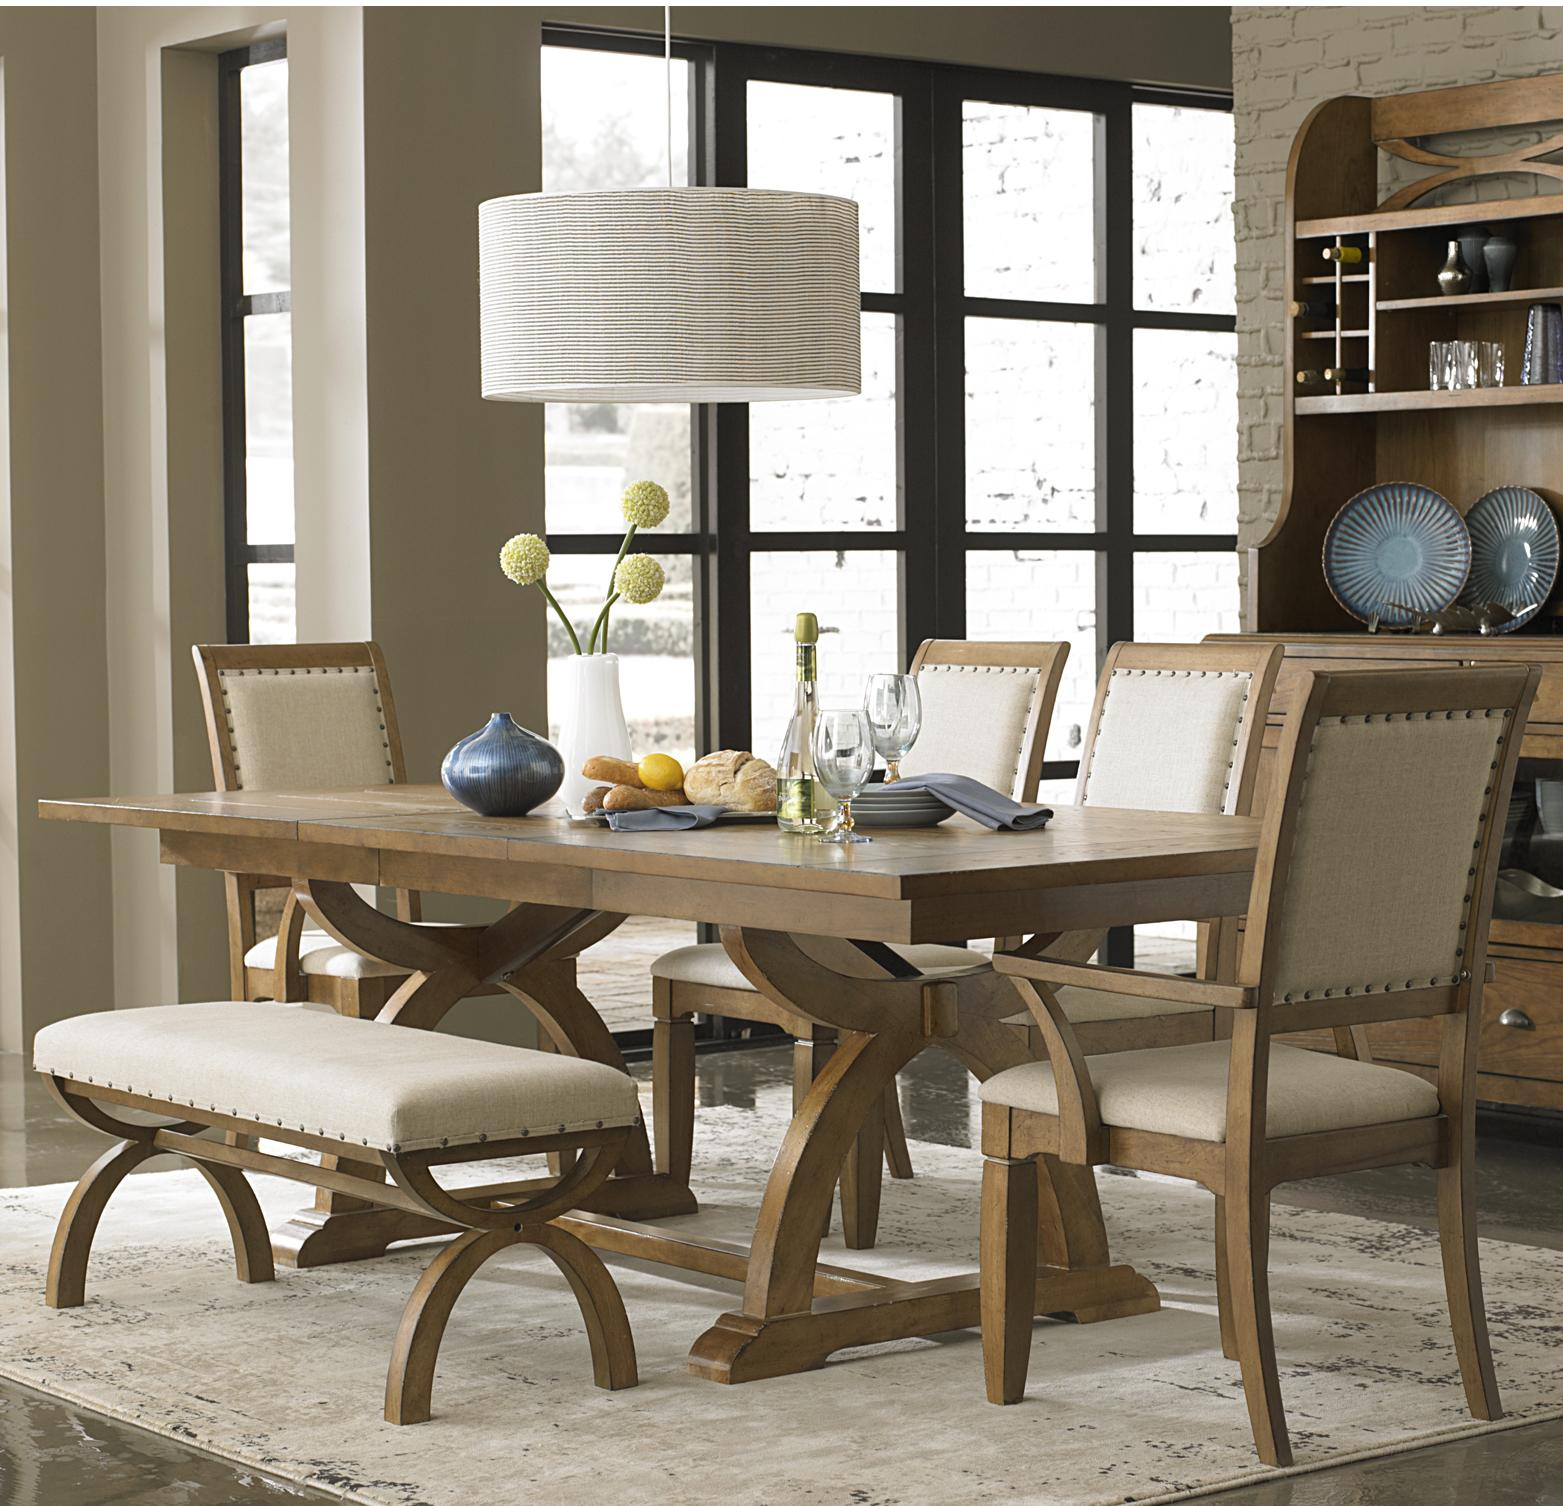 6 Piece Trestle Table Set with 4 Upholstered Chairs & Dining Bench ...